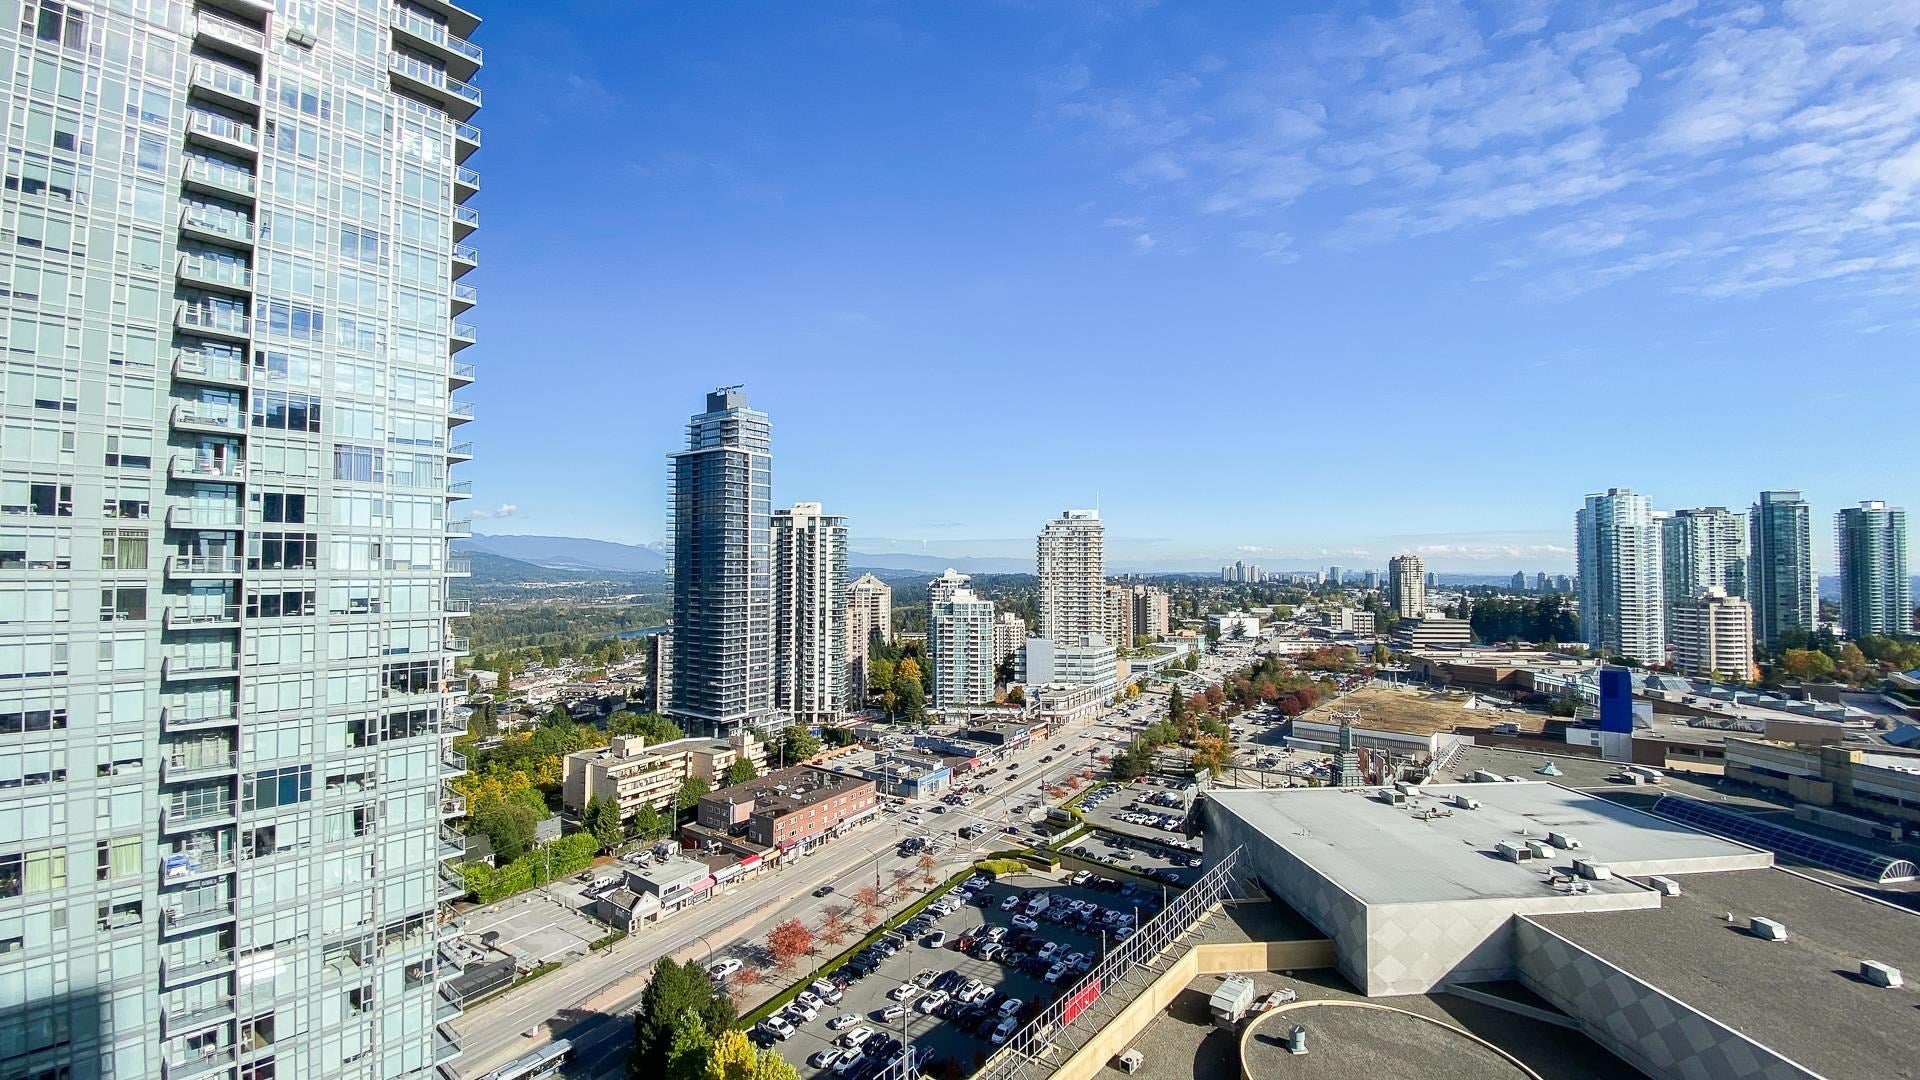 2510 4670 ASSEMBLY WAY - Metrotown Apartment/Condo for sale, 2 Bedrooms (R2625732) - #2